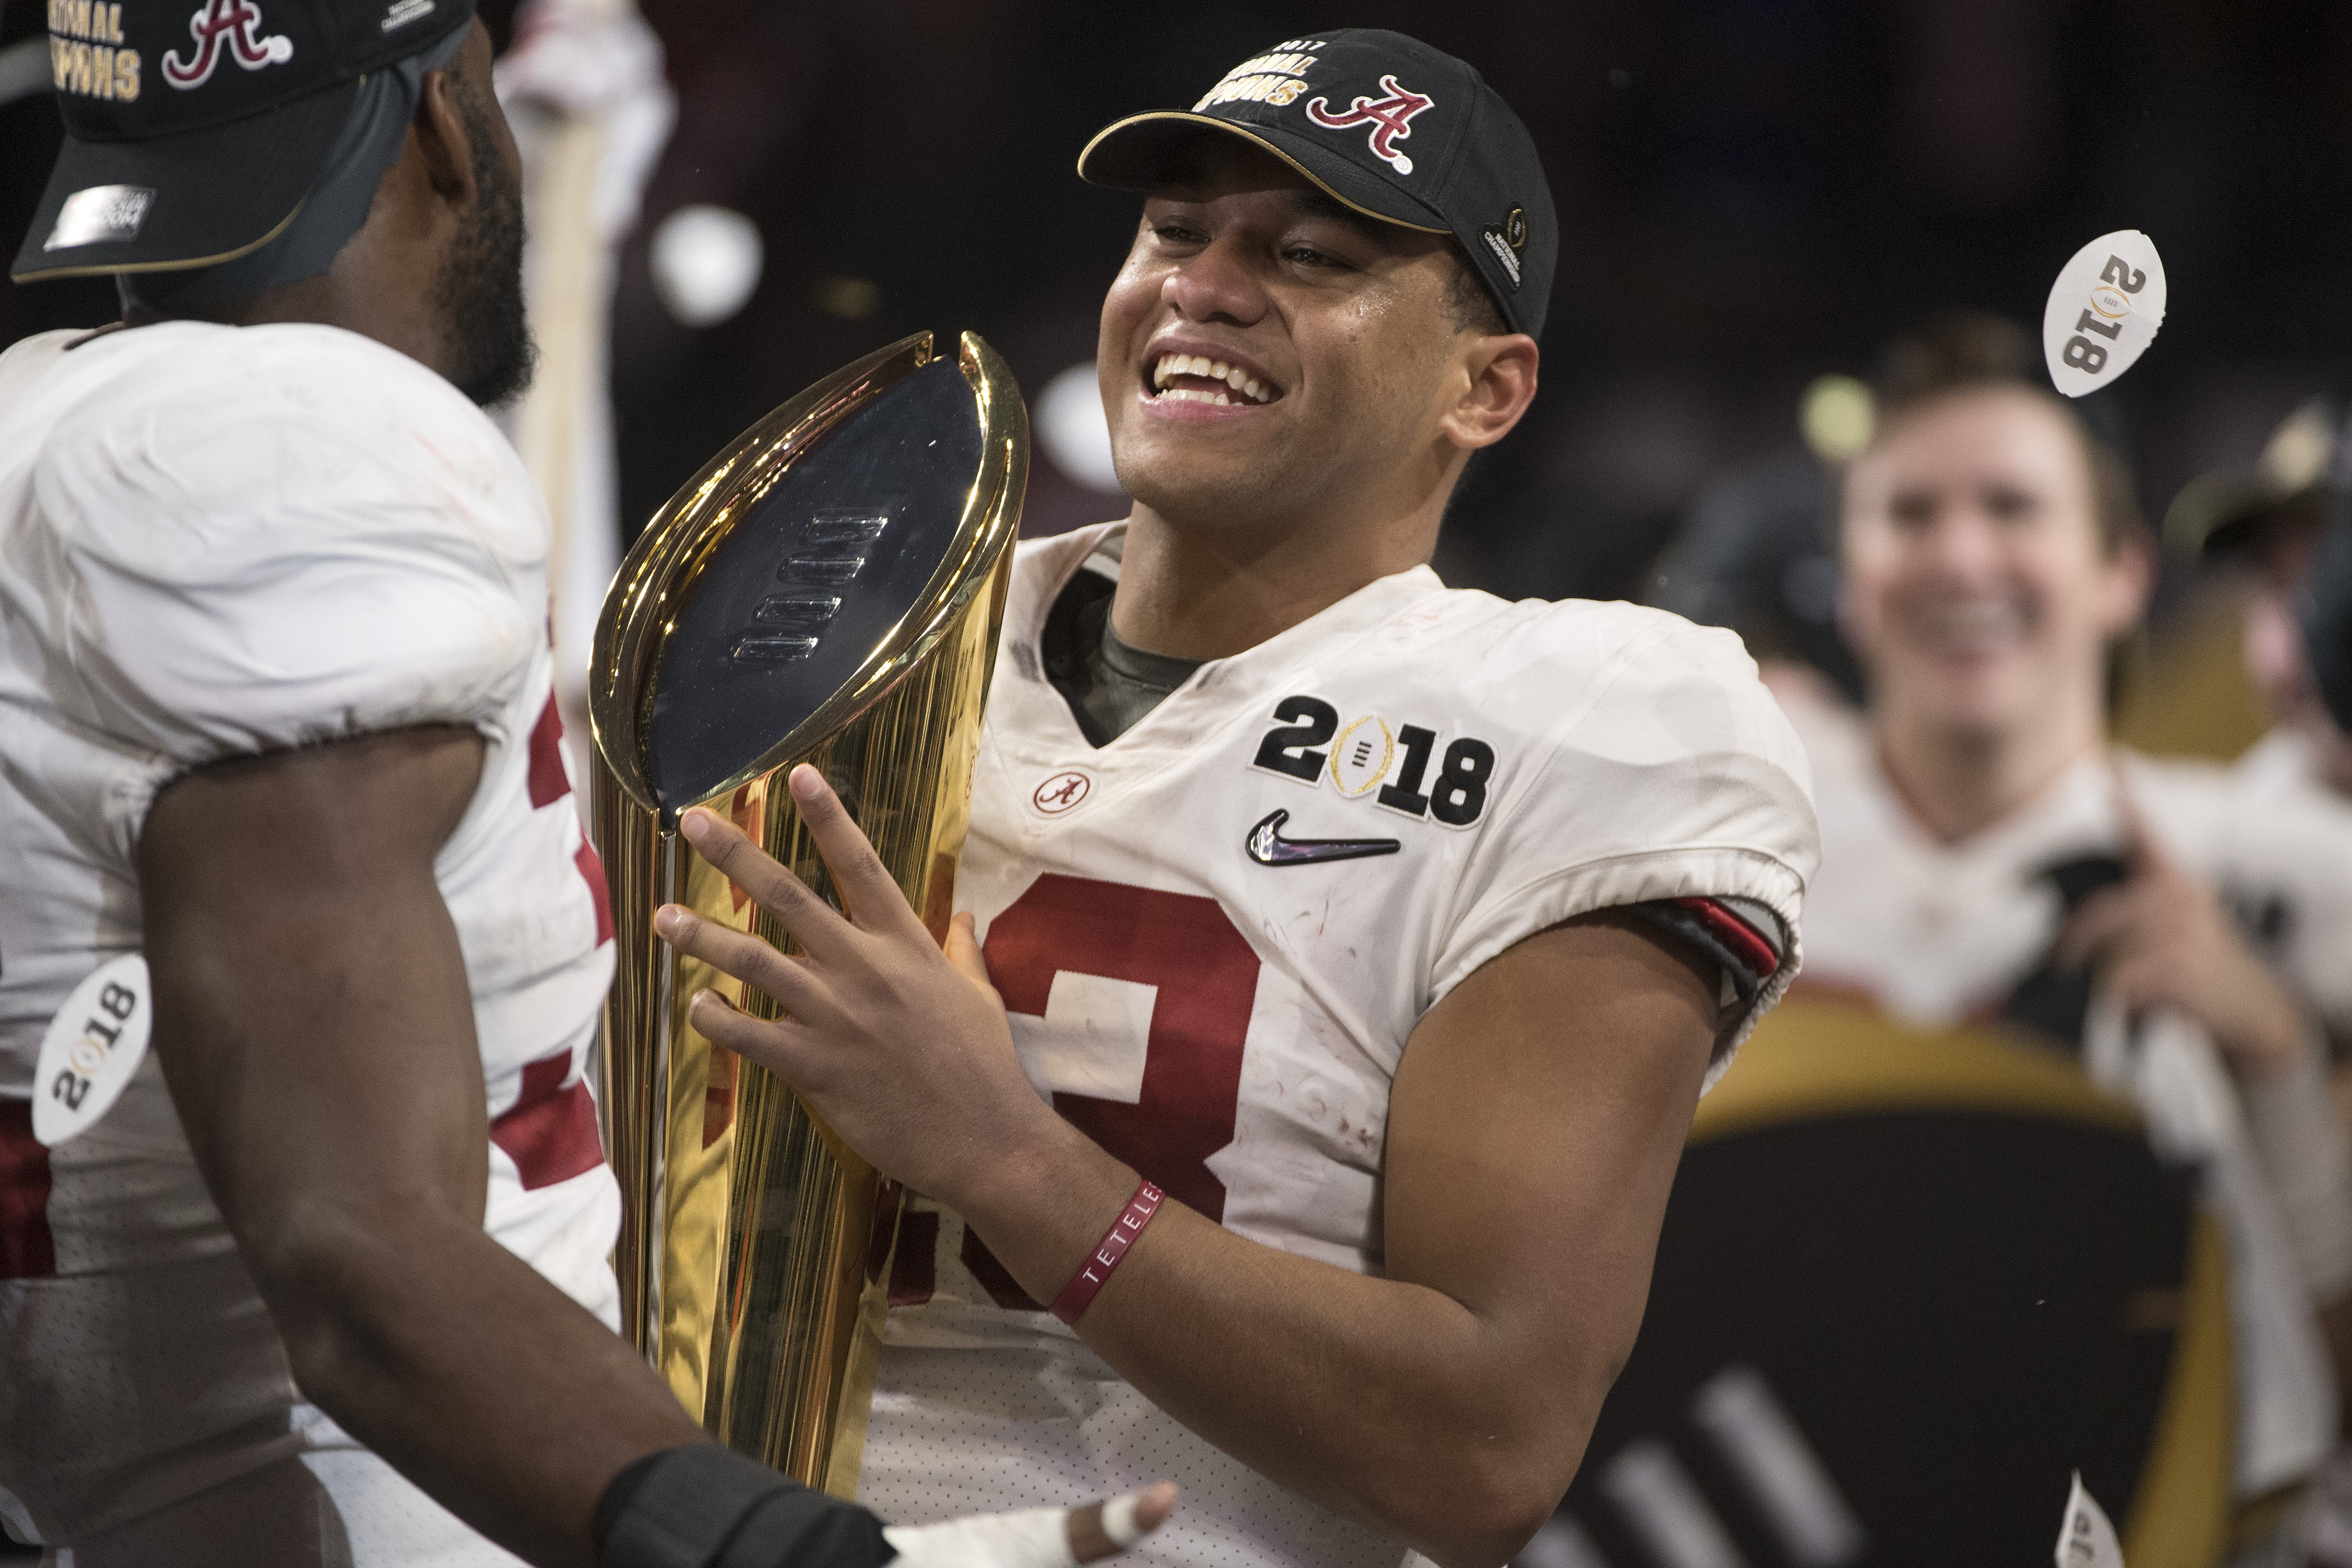 Tua Tagovailoa smiling and holding the national championship trophy